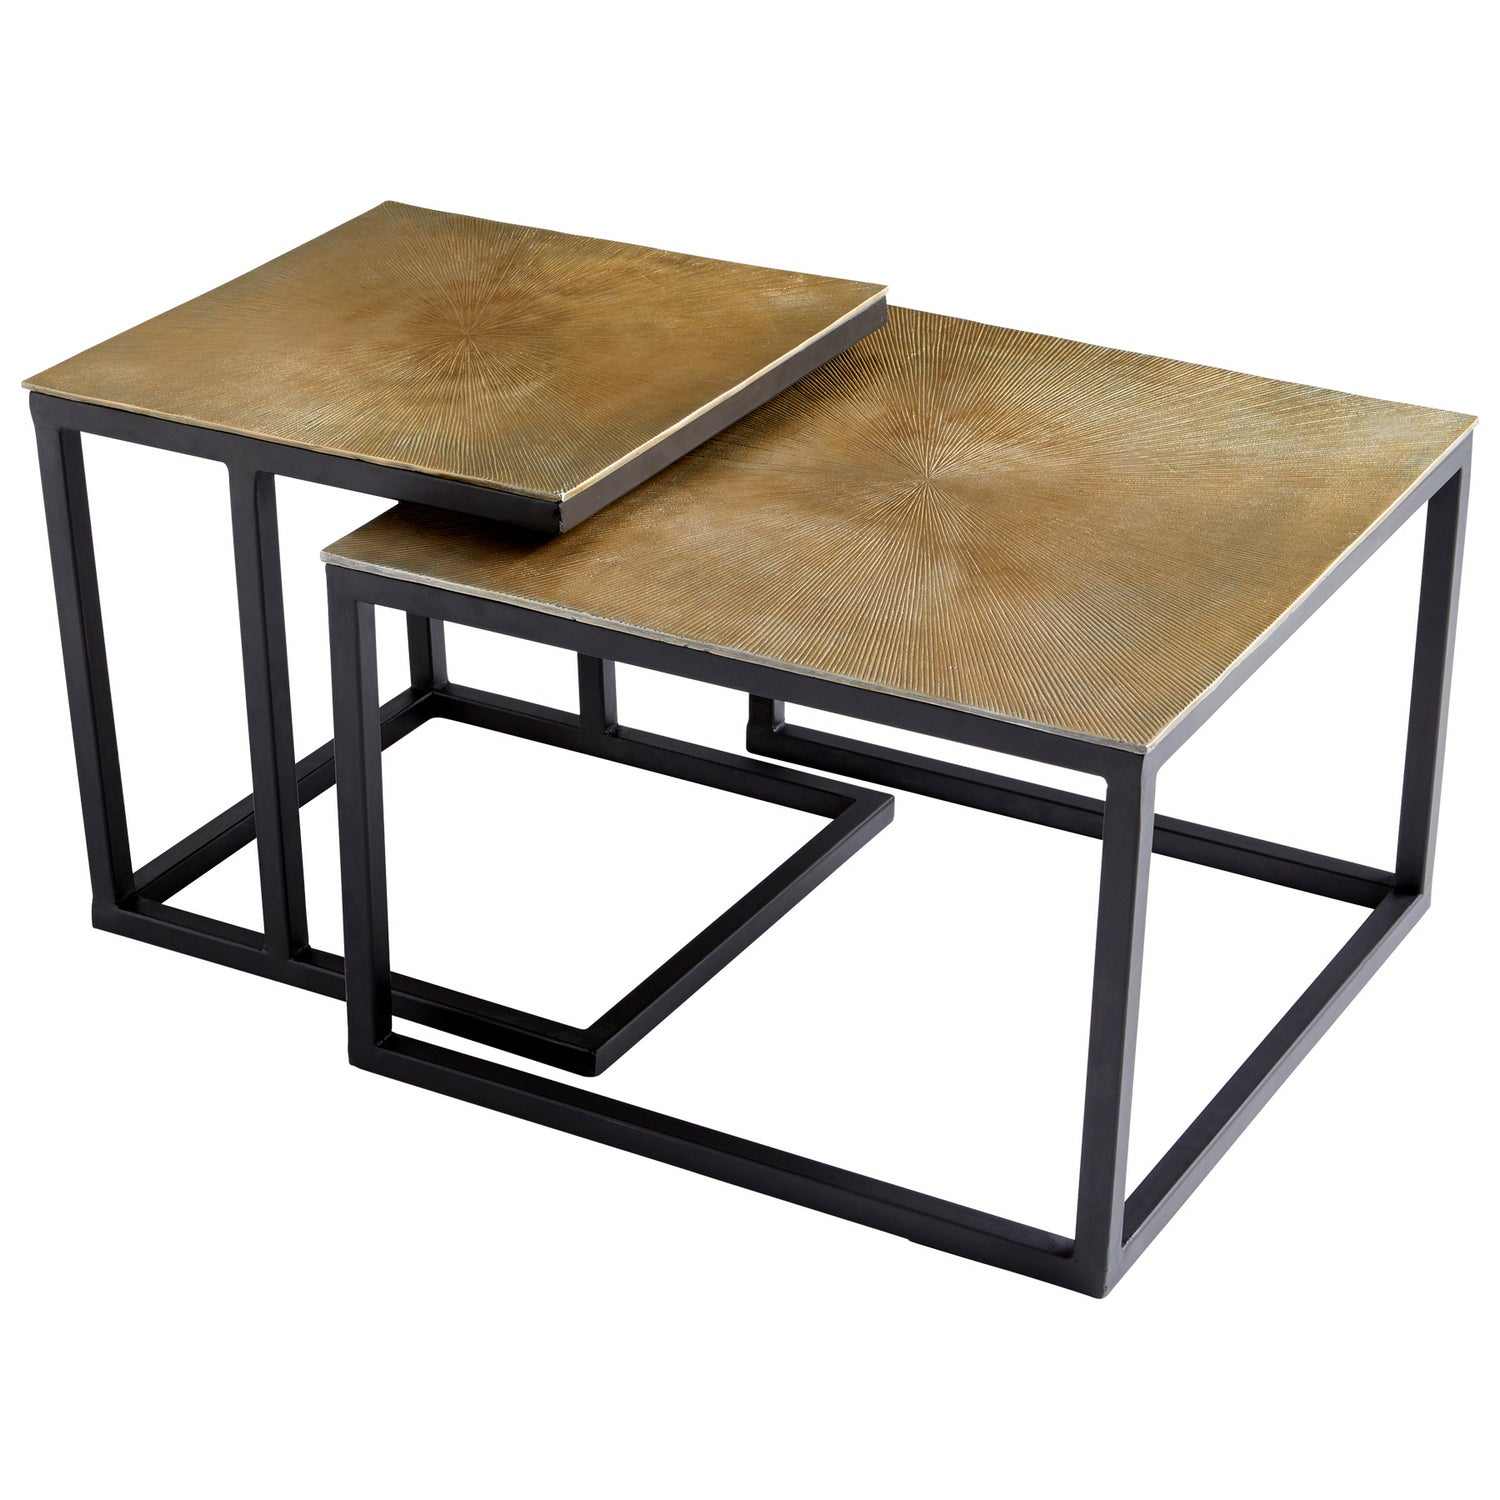 Arca Nesting Tables design by Cyan Design